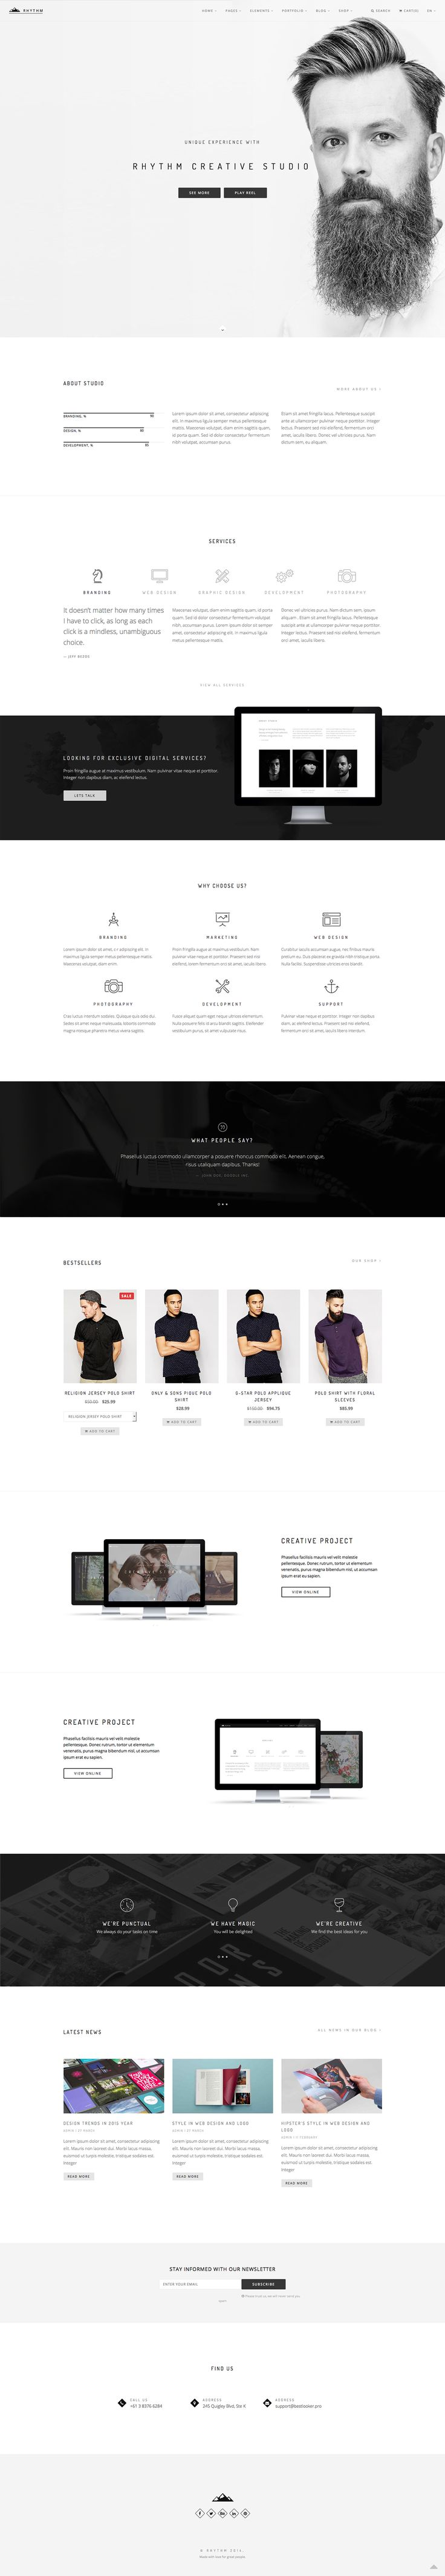 Rhythm - Drupal Theme by NikaDevs on Behance